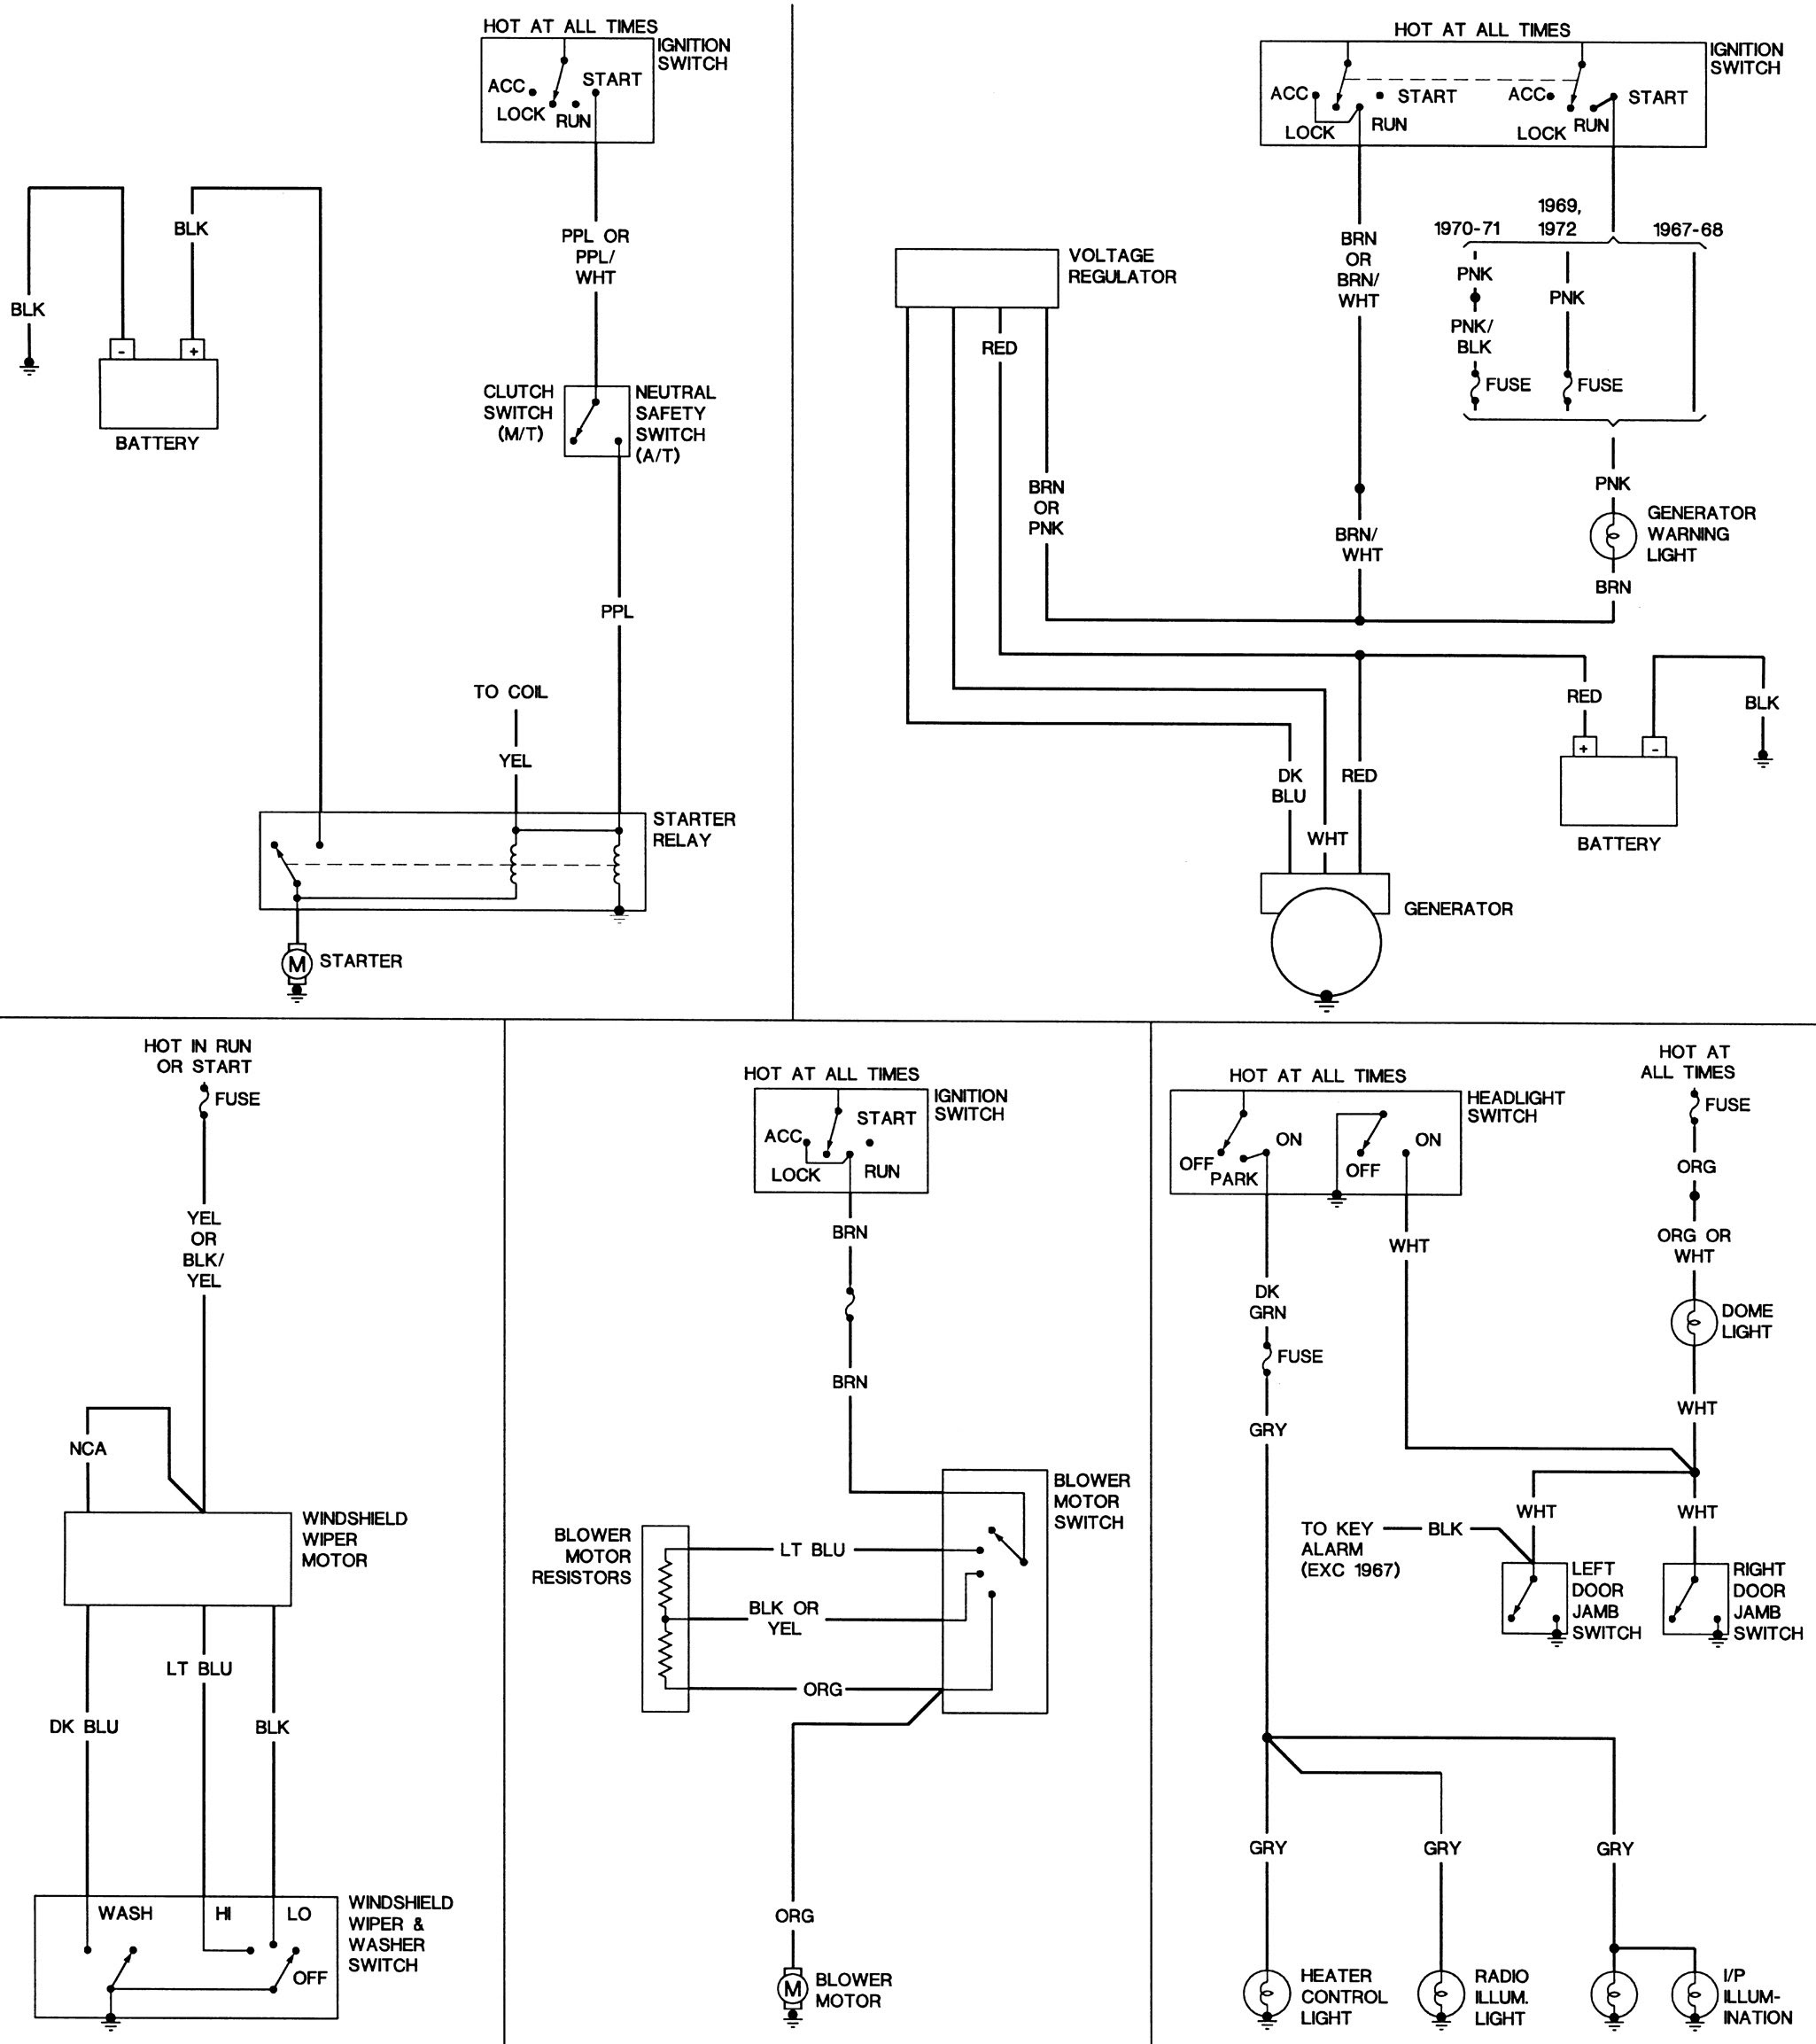 1970 Camaro Headlight Wiring Diagram 2004 Chevrolet Impala Wiring Harness Begeboy Wiring Diagram Source